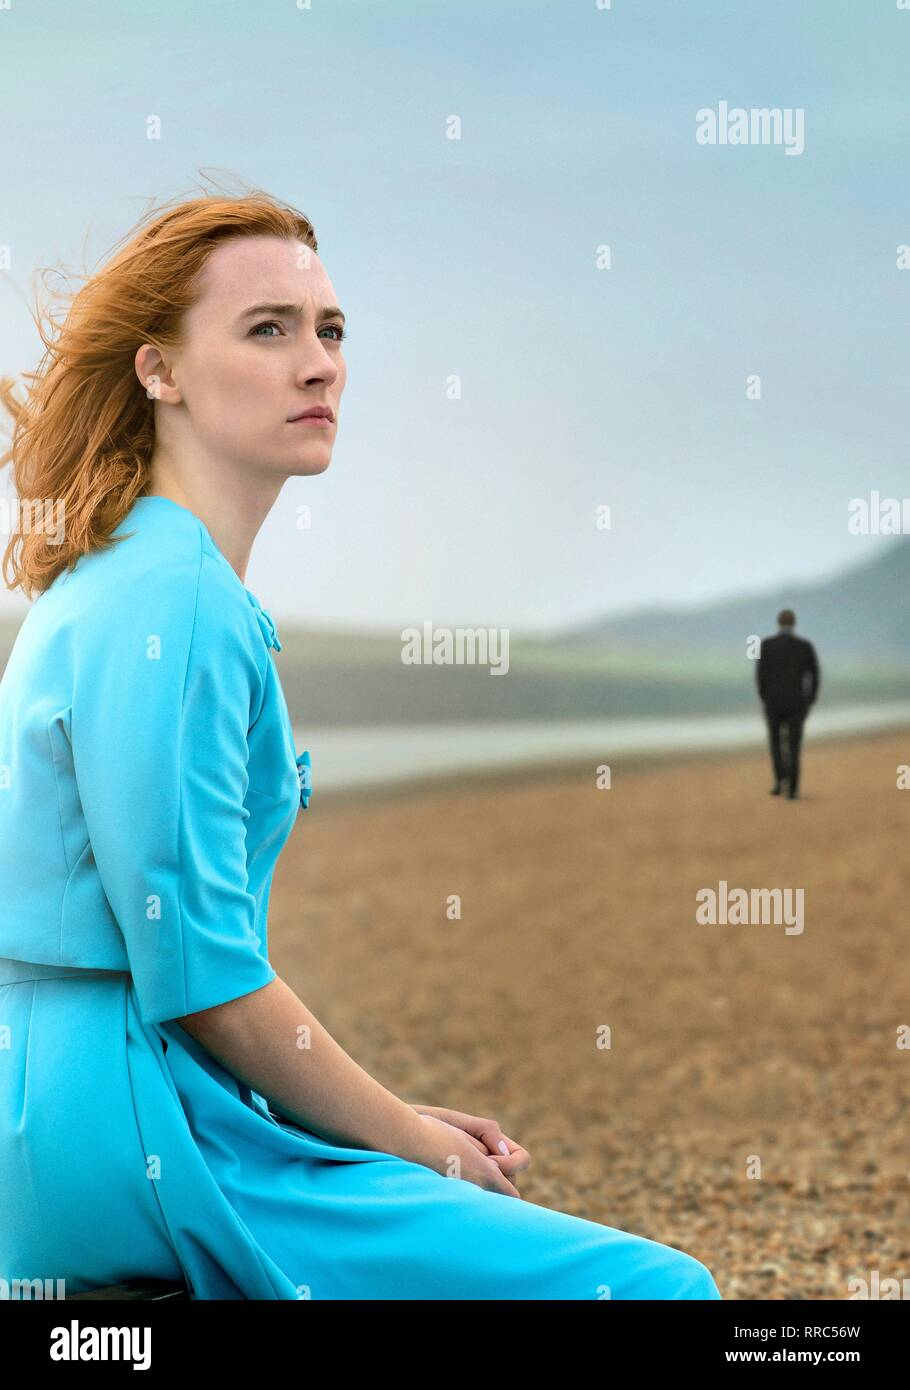 ON CHESIL BEACH, SAOIRSE RONAN, 2017 - Stock Image